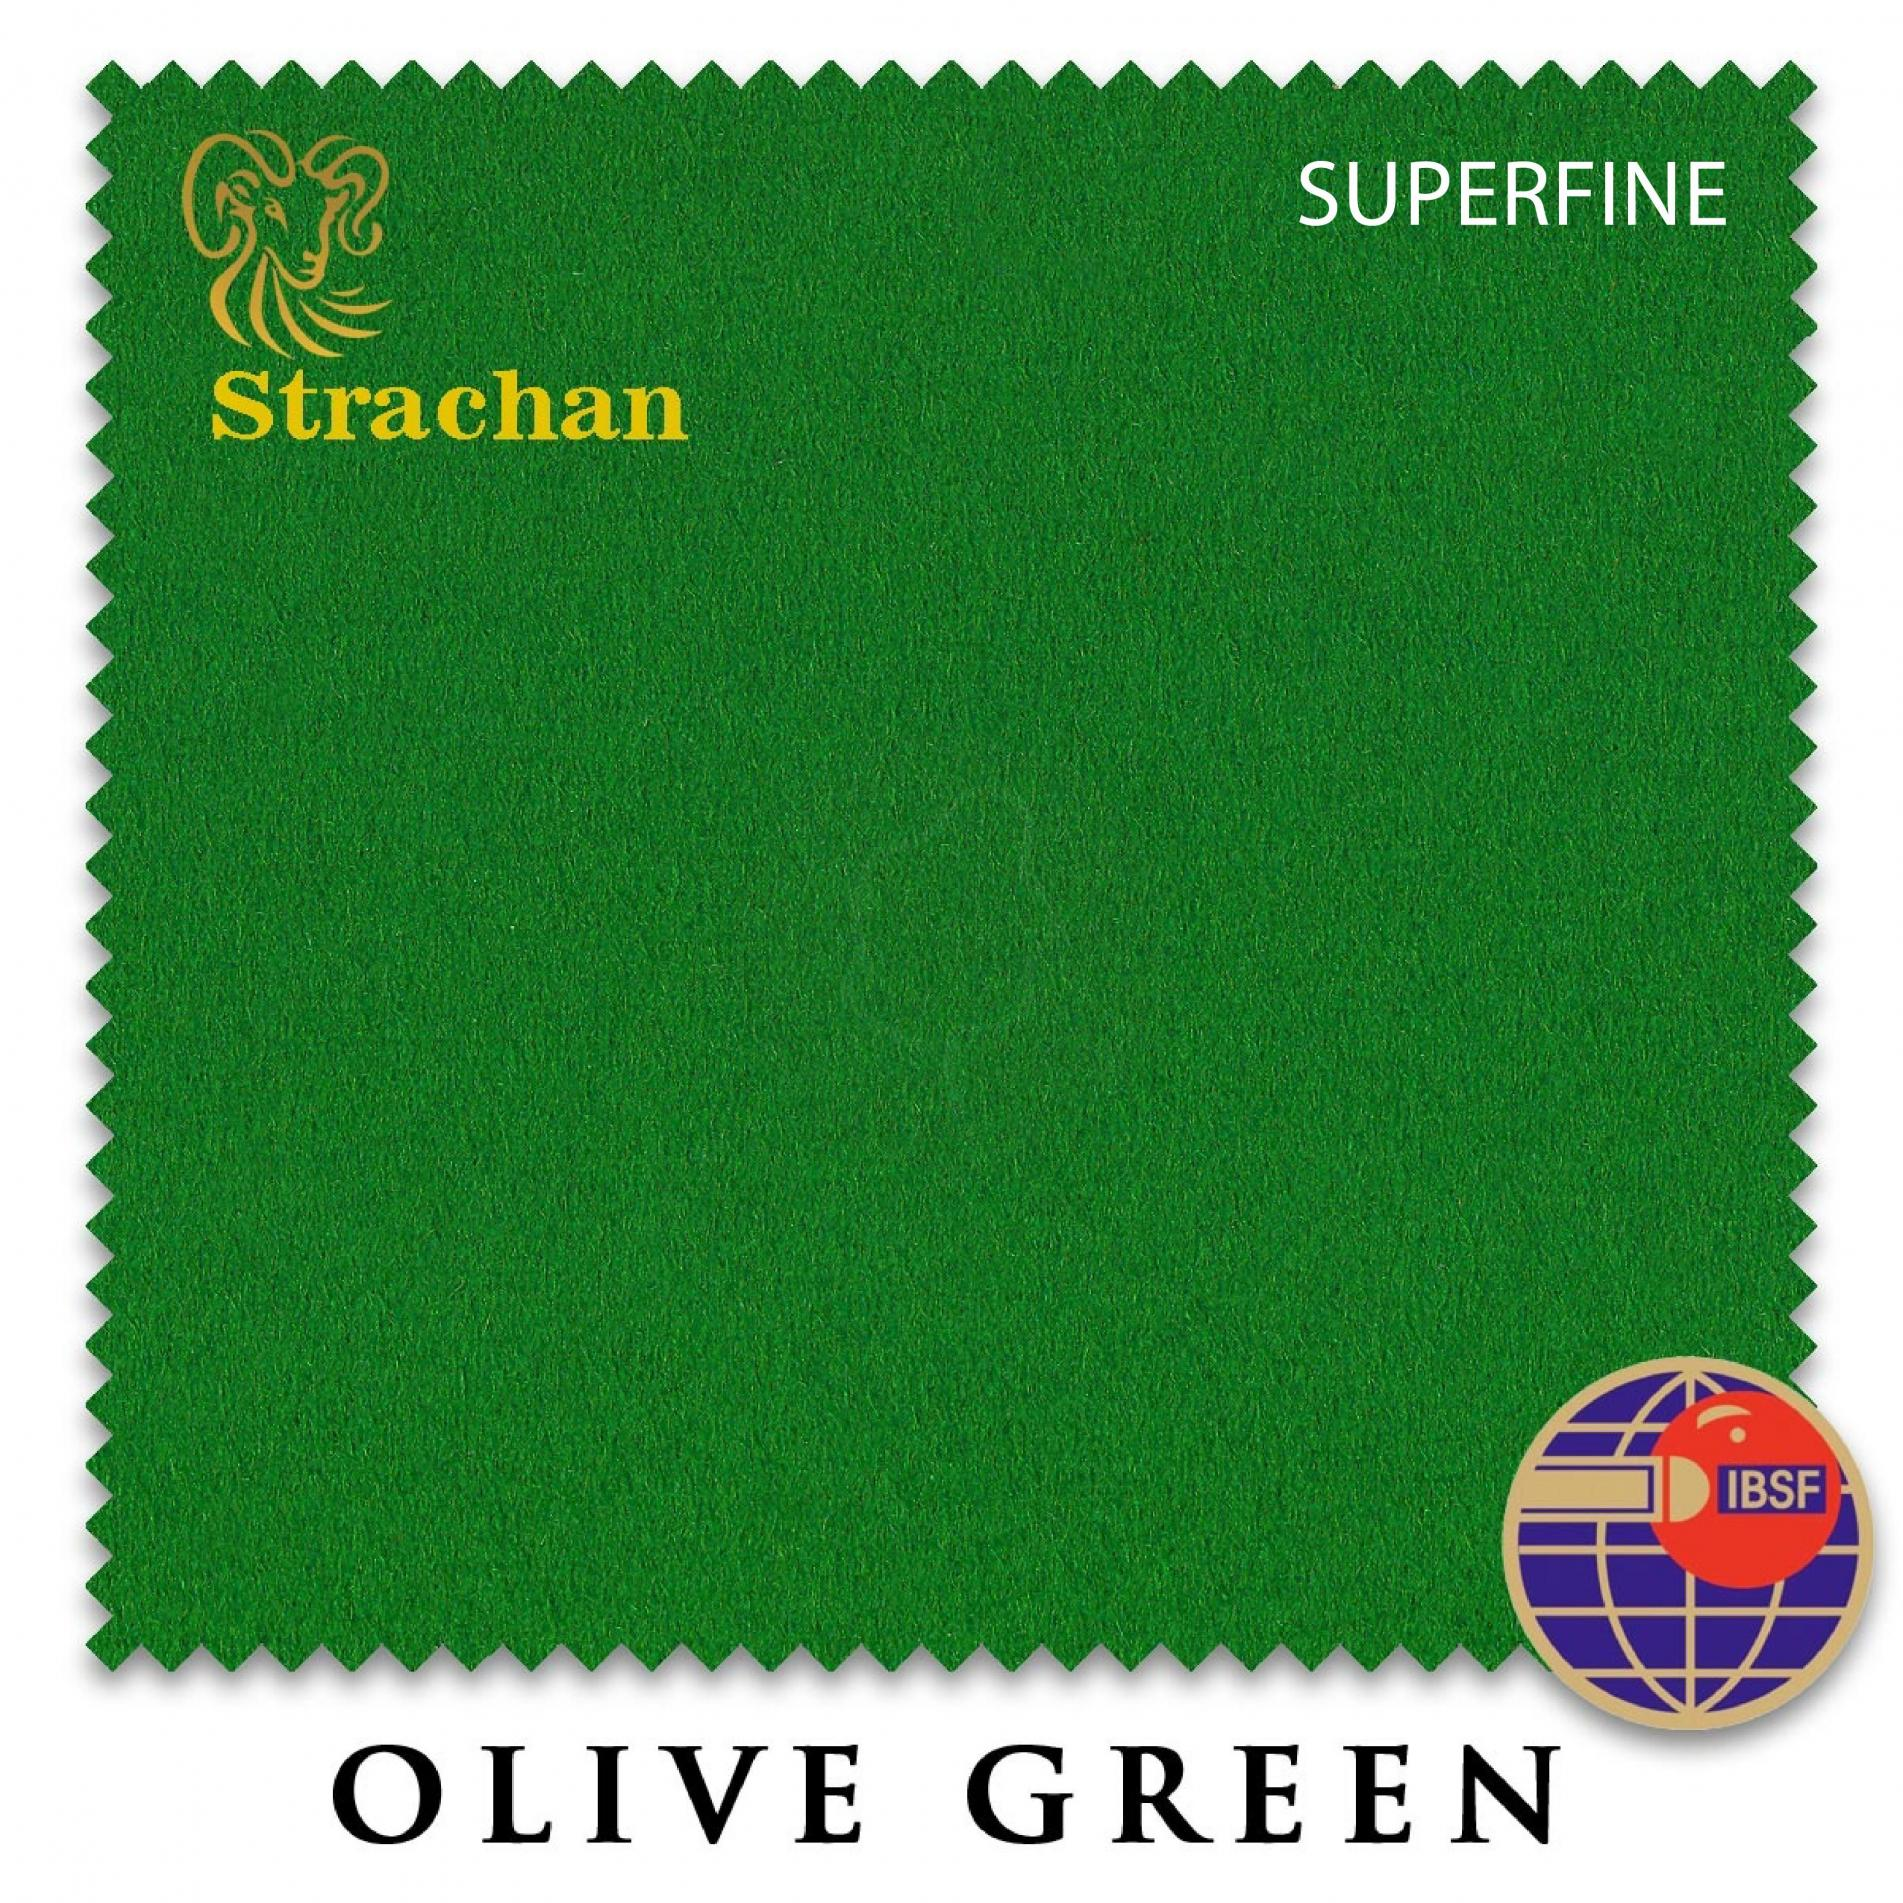 Сукно Strachan Superfine Anti-kick Snooker 193см Olive Green